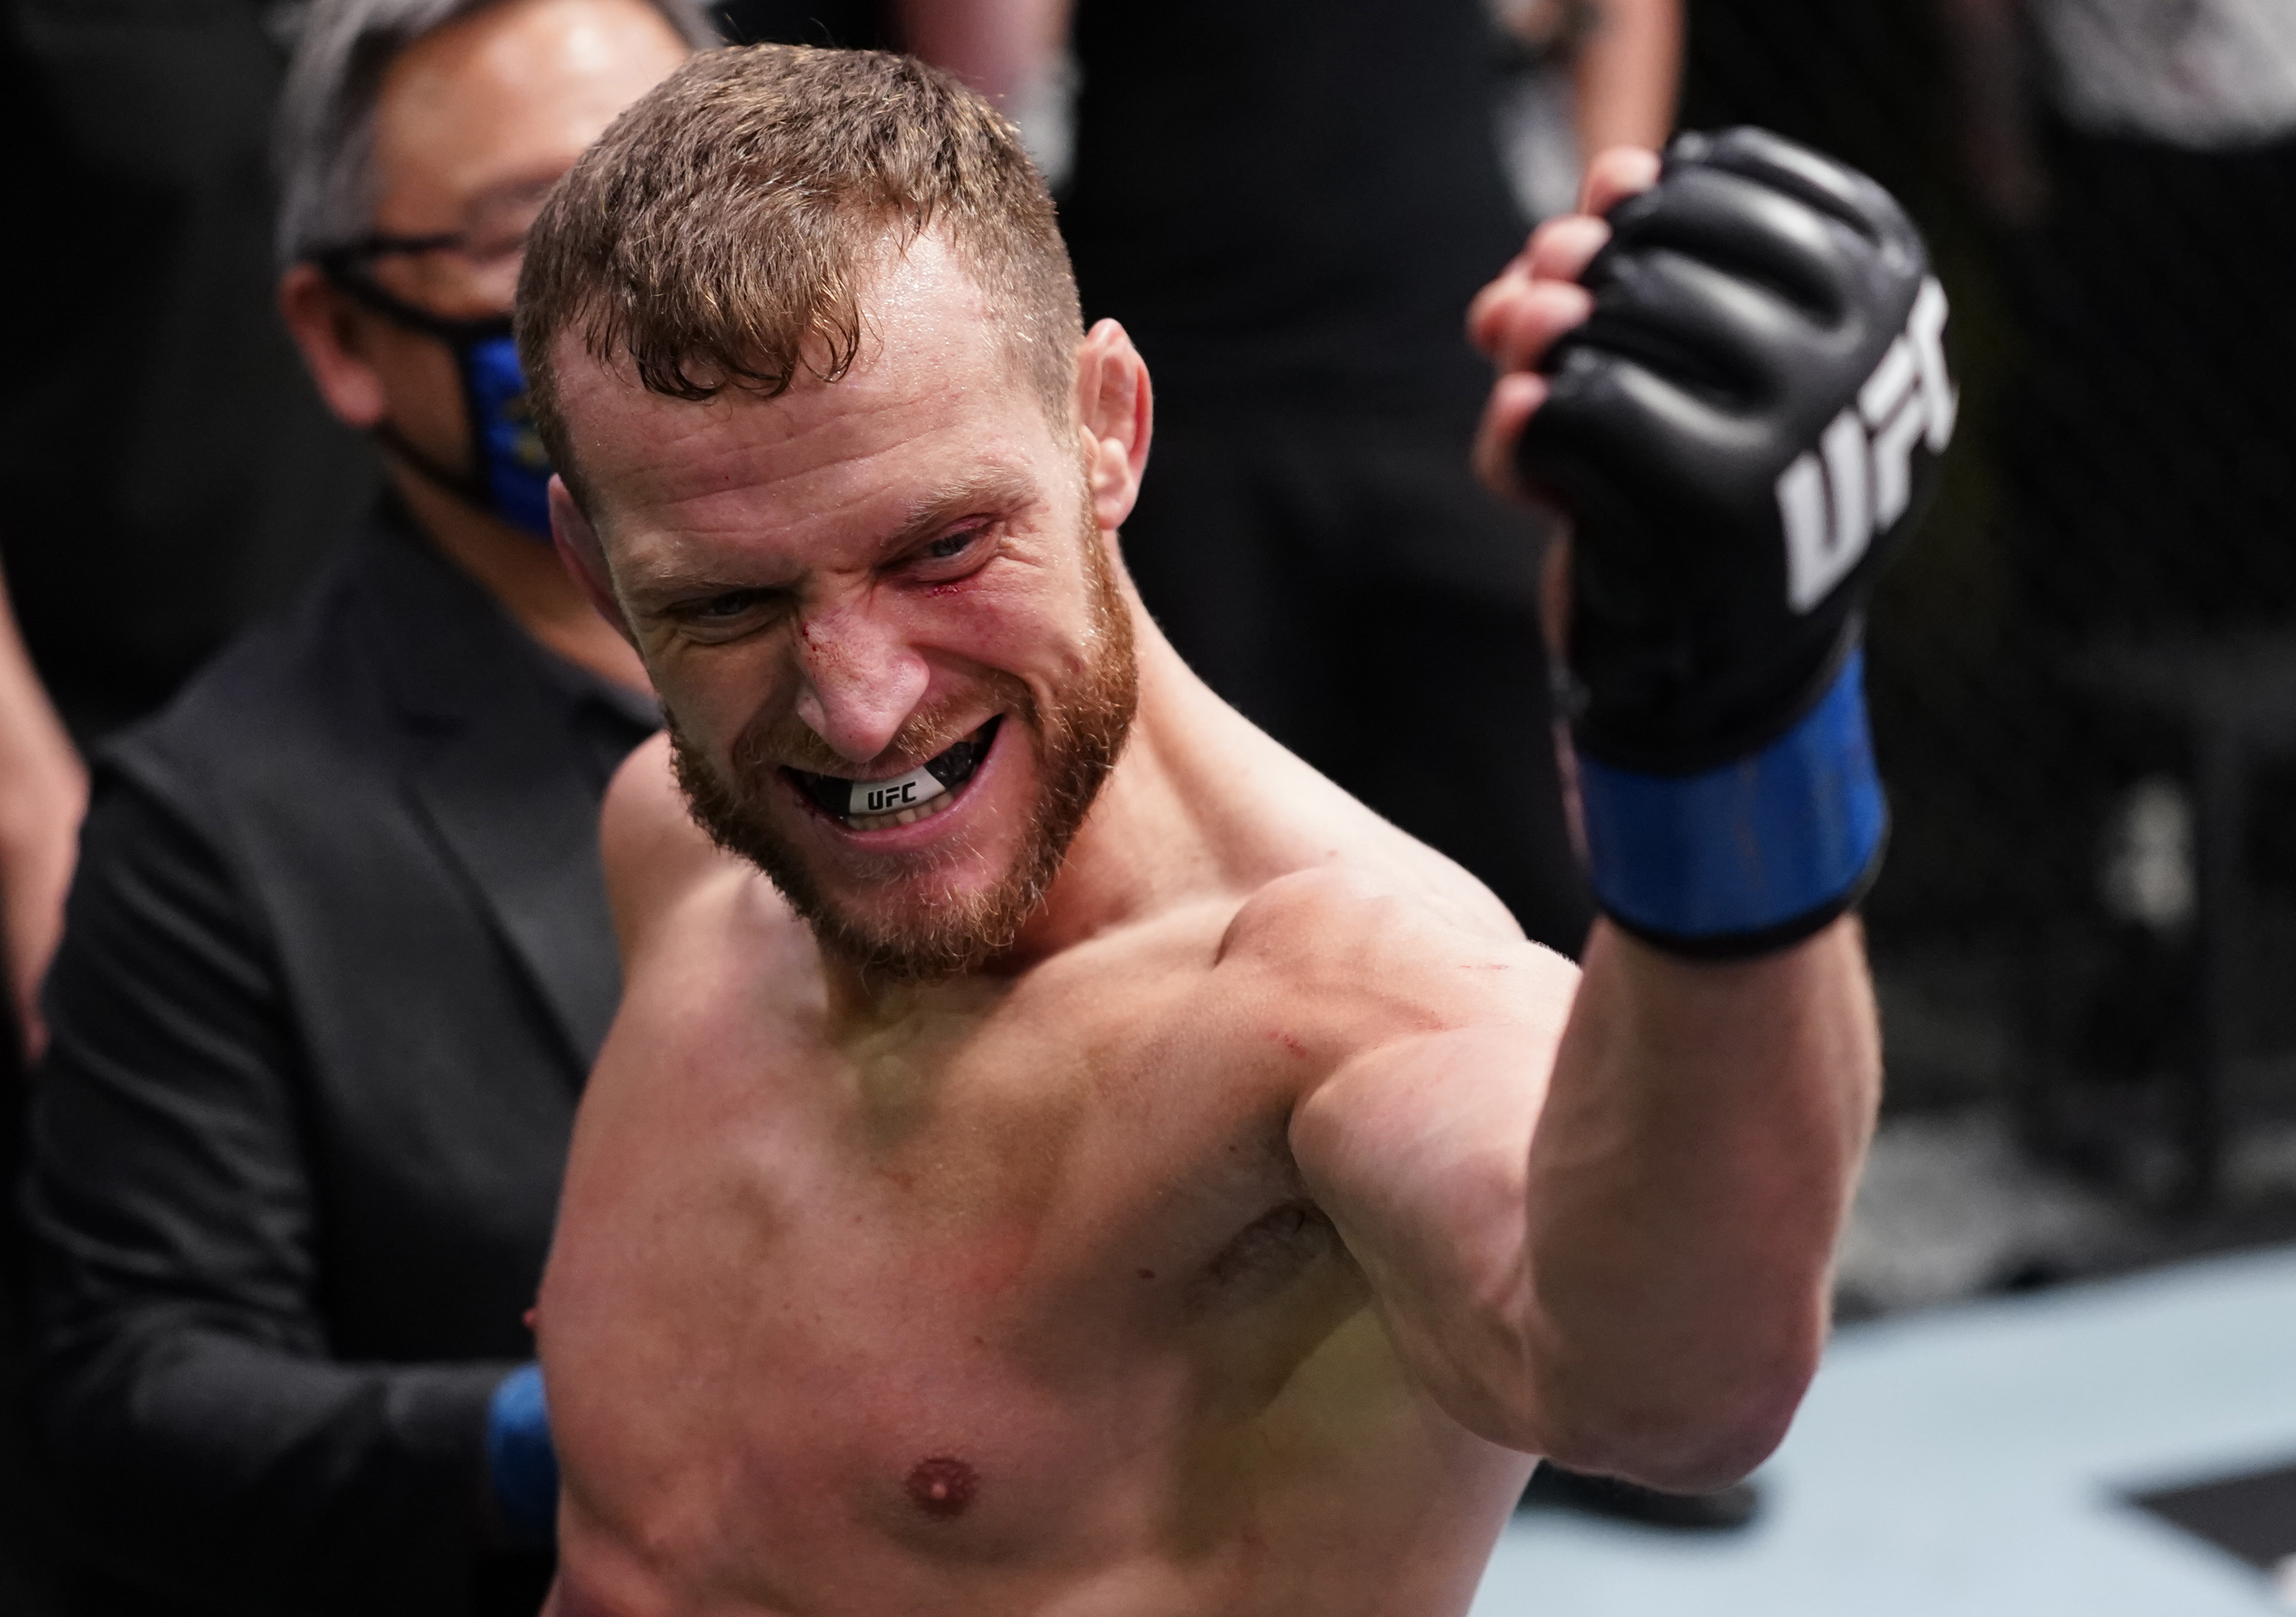 Davey Grant of England reacts after his knockout victory over Jonathan Martinez in a bantamweight fight during the UFC Fight Night event at UFC APEX on March 13, 2021 in Las Vegas, Nevada. (Photo by Jeff Bottari/Zuffa LLC)